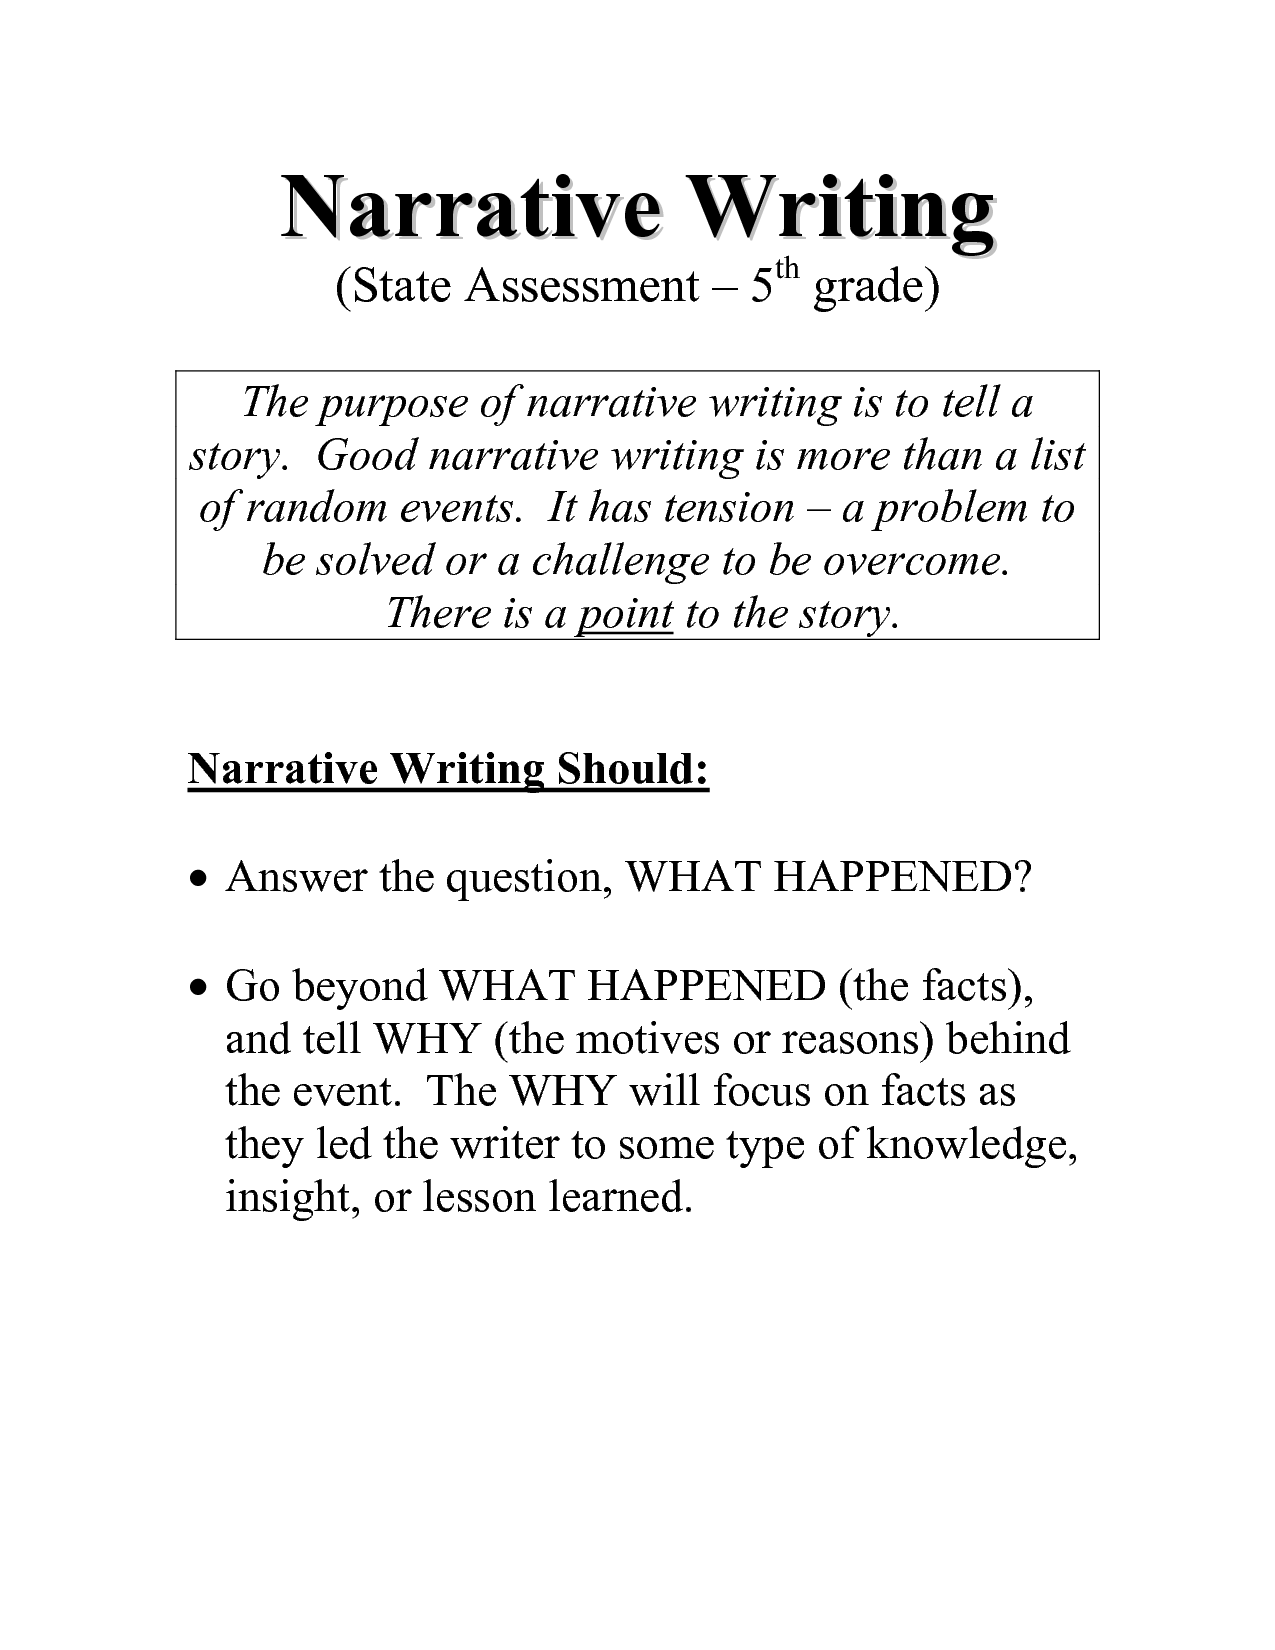 narrative essay example good narrative essay example - Narrative Essay Writing Examples